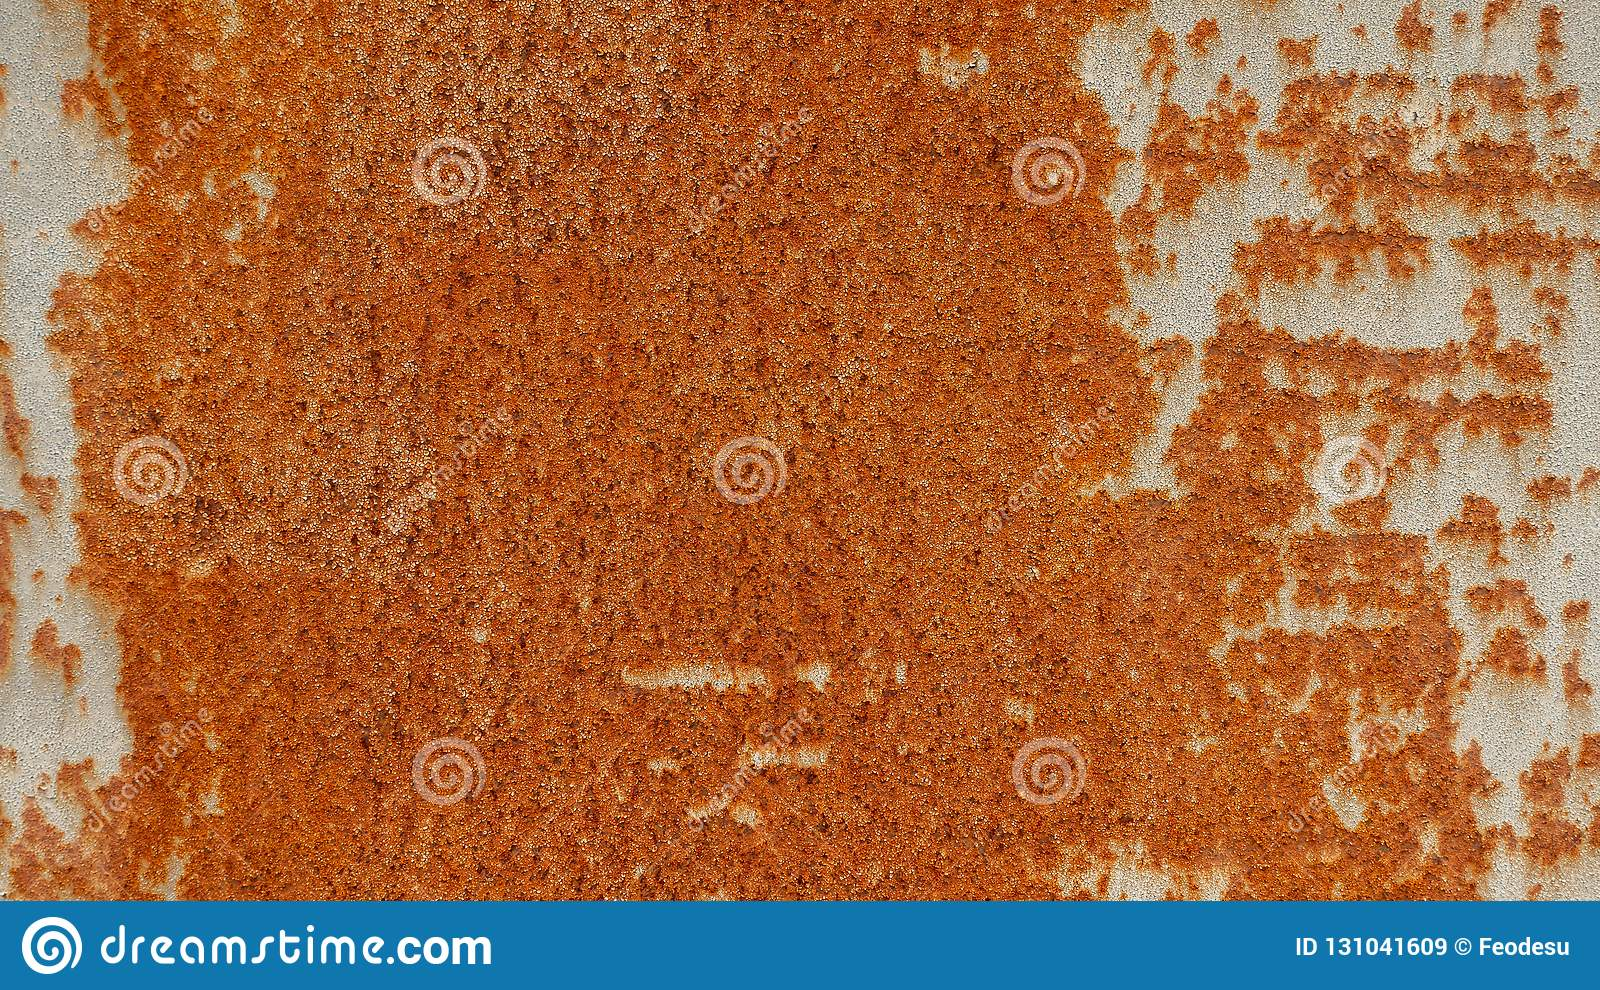 Abstract Rusty Metal Texture Stock Image - Image of ...